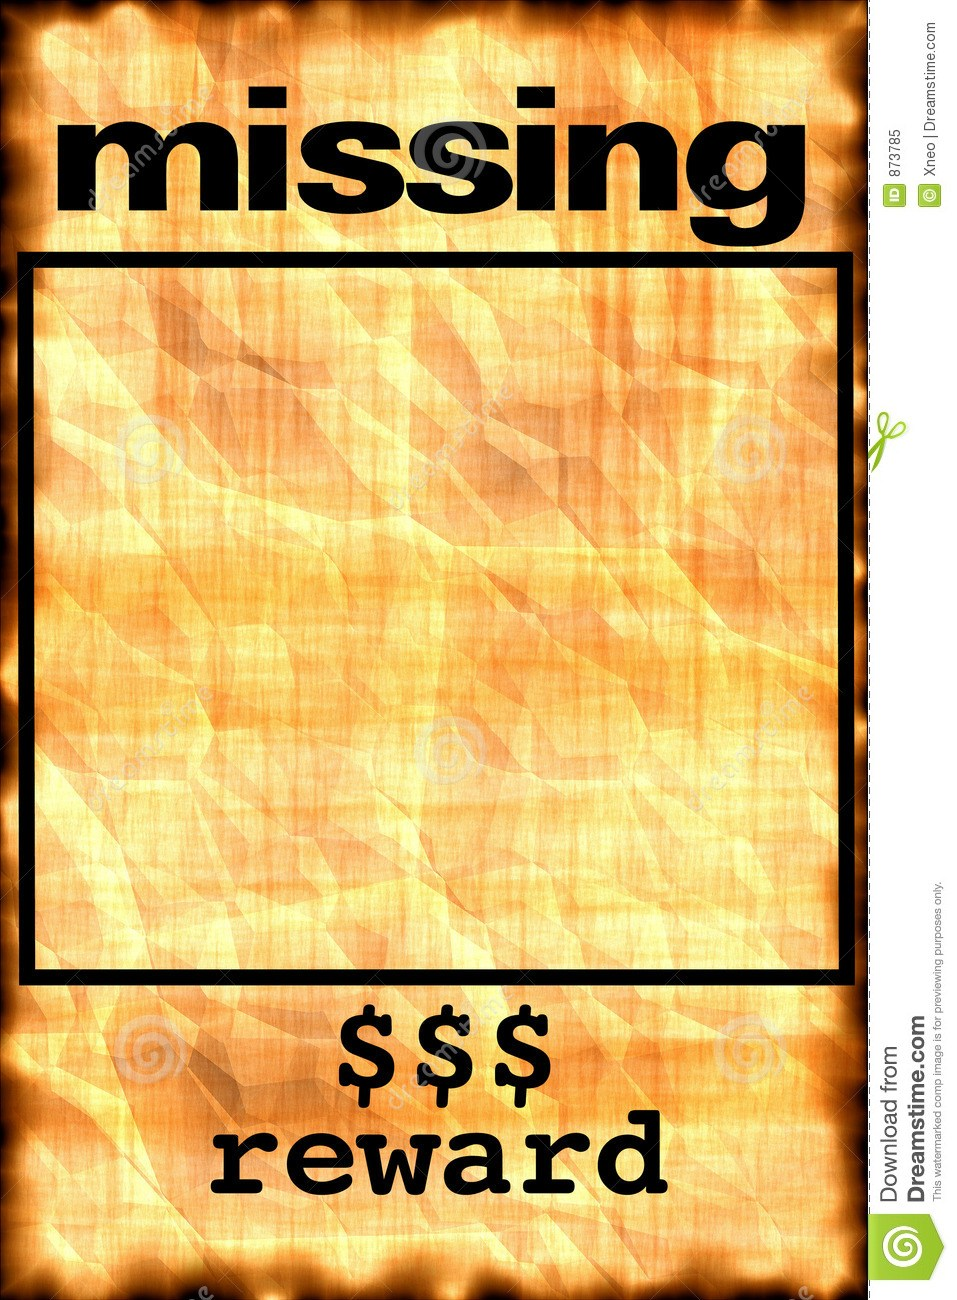 Missing poster clipart 6 » Clipart Portal.